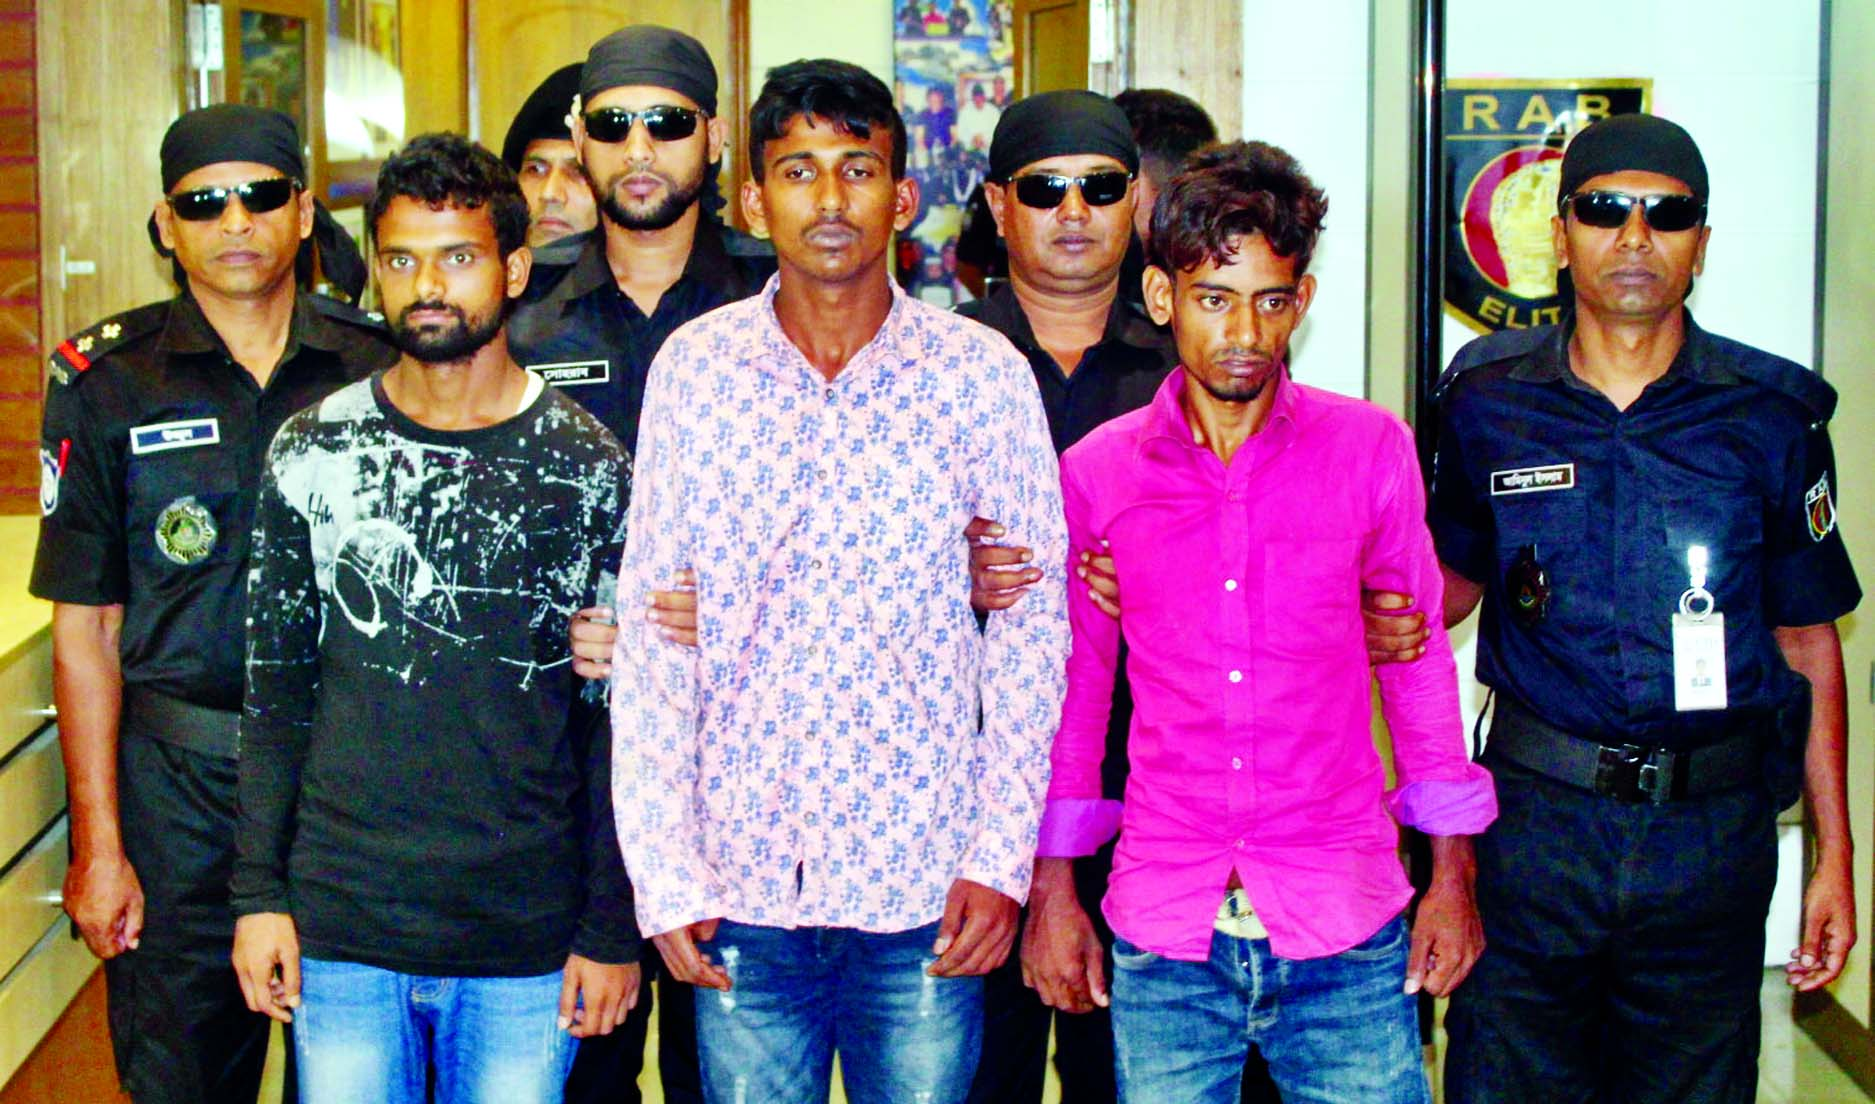 Three criminals were arrested by RAB-1 for allegedly killing of Shakib of city's Uttarkhan area recently. This photo was taken from RAB media centre on Tuesday.